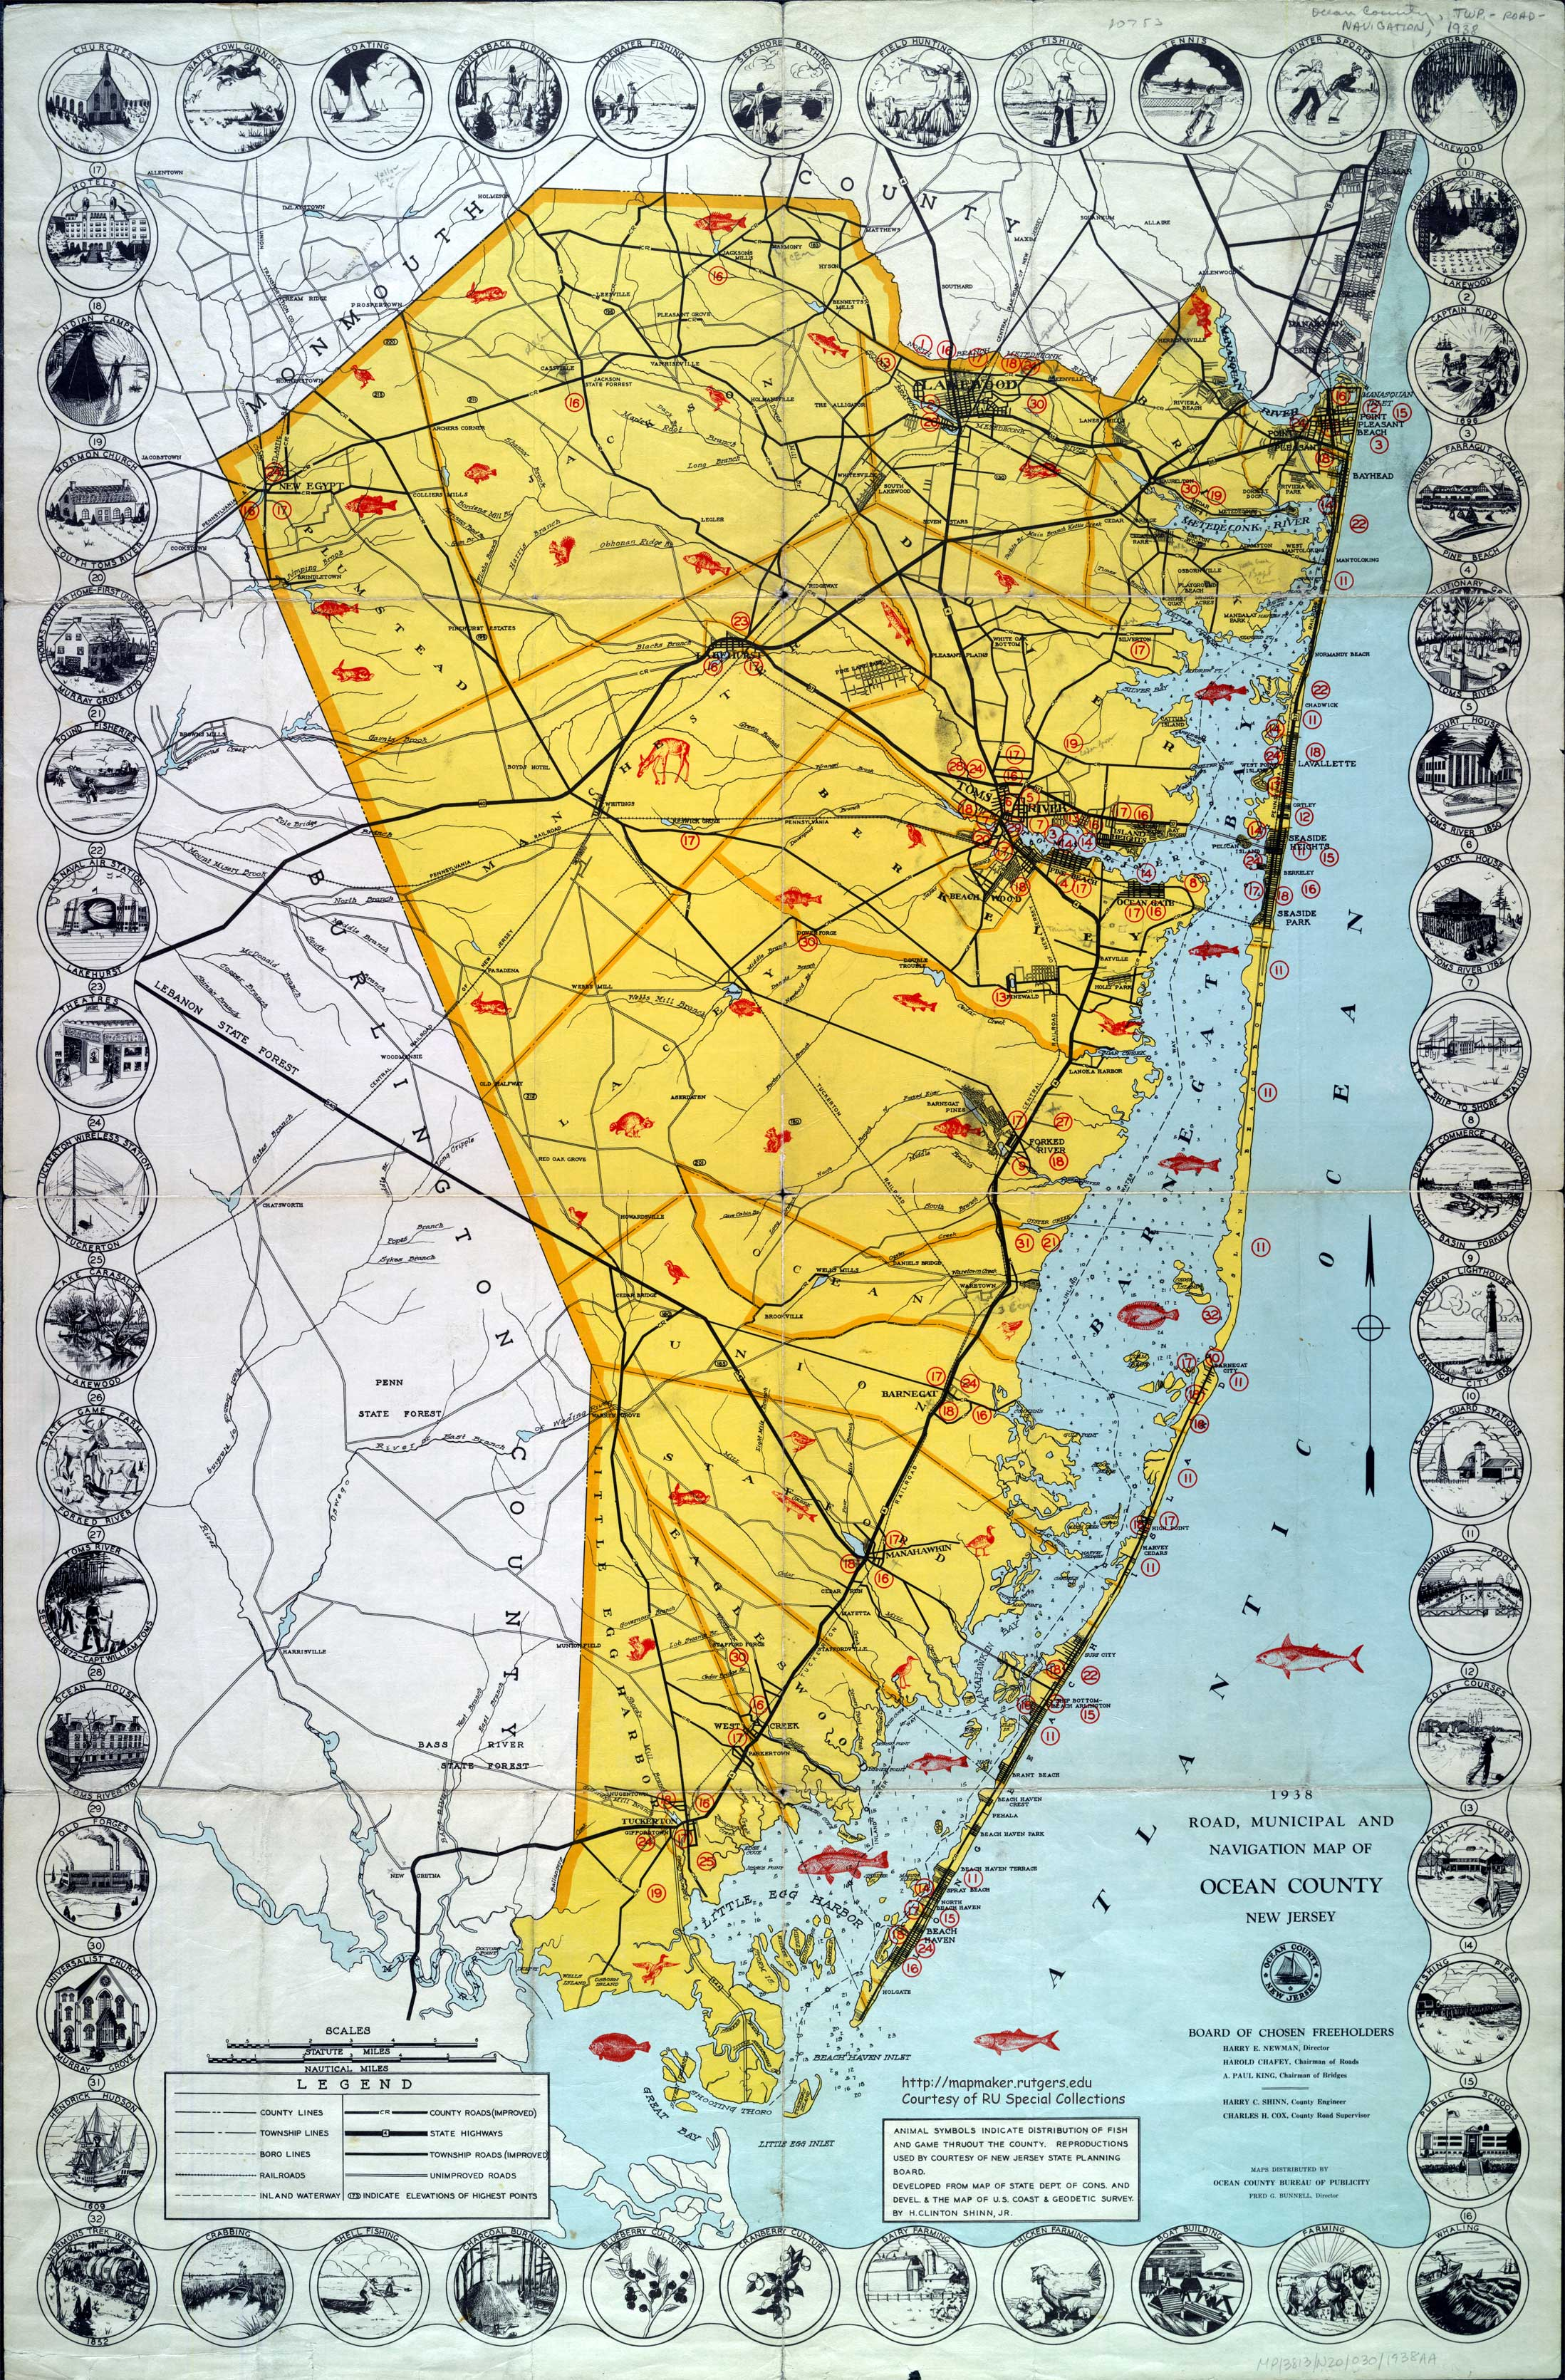 Historical Ocean County New Jersey Maps - County maps of new jersey